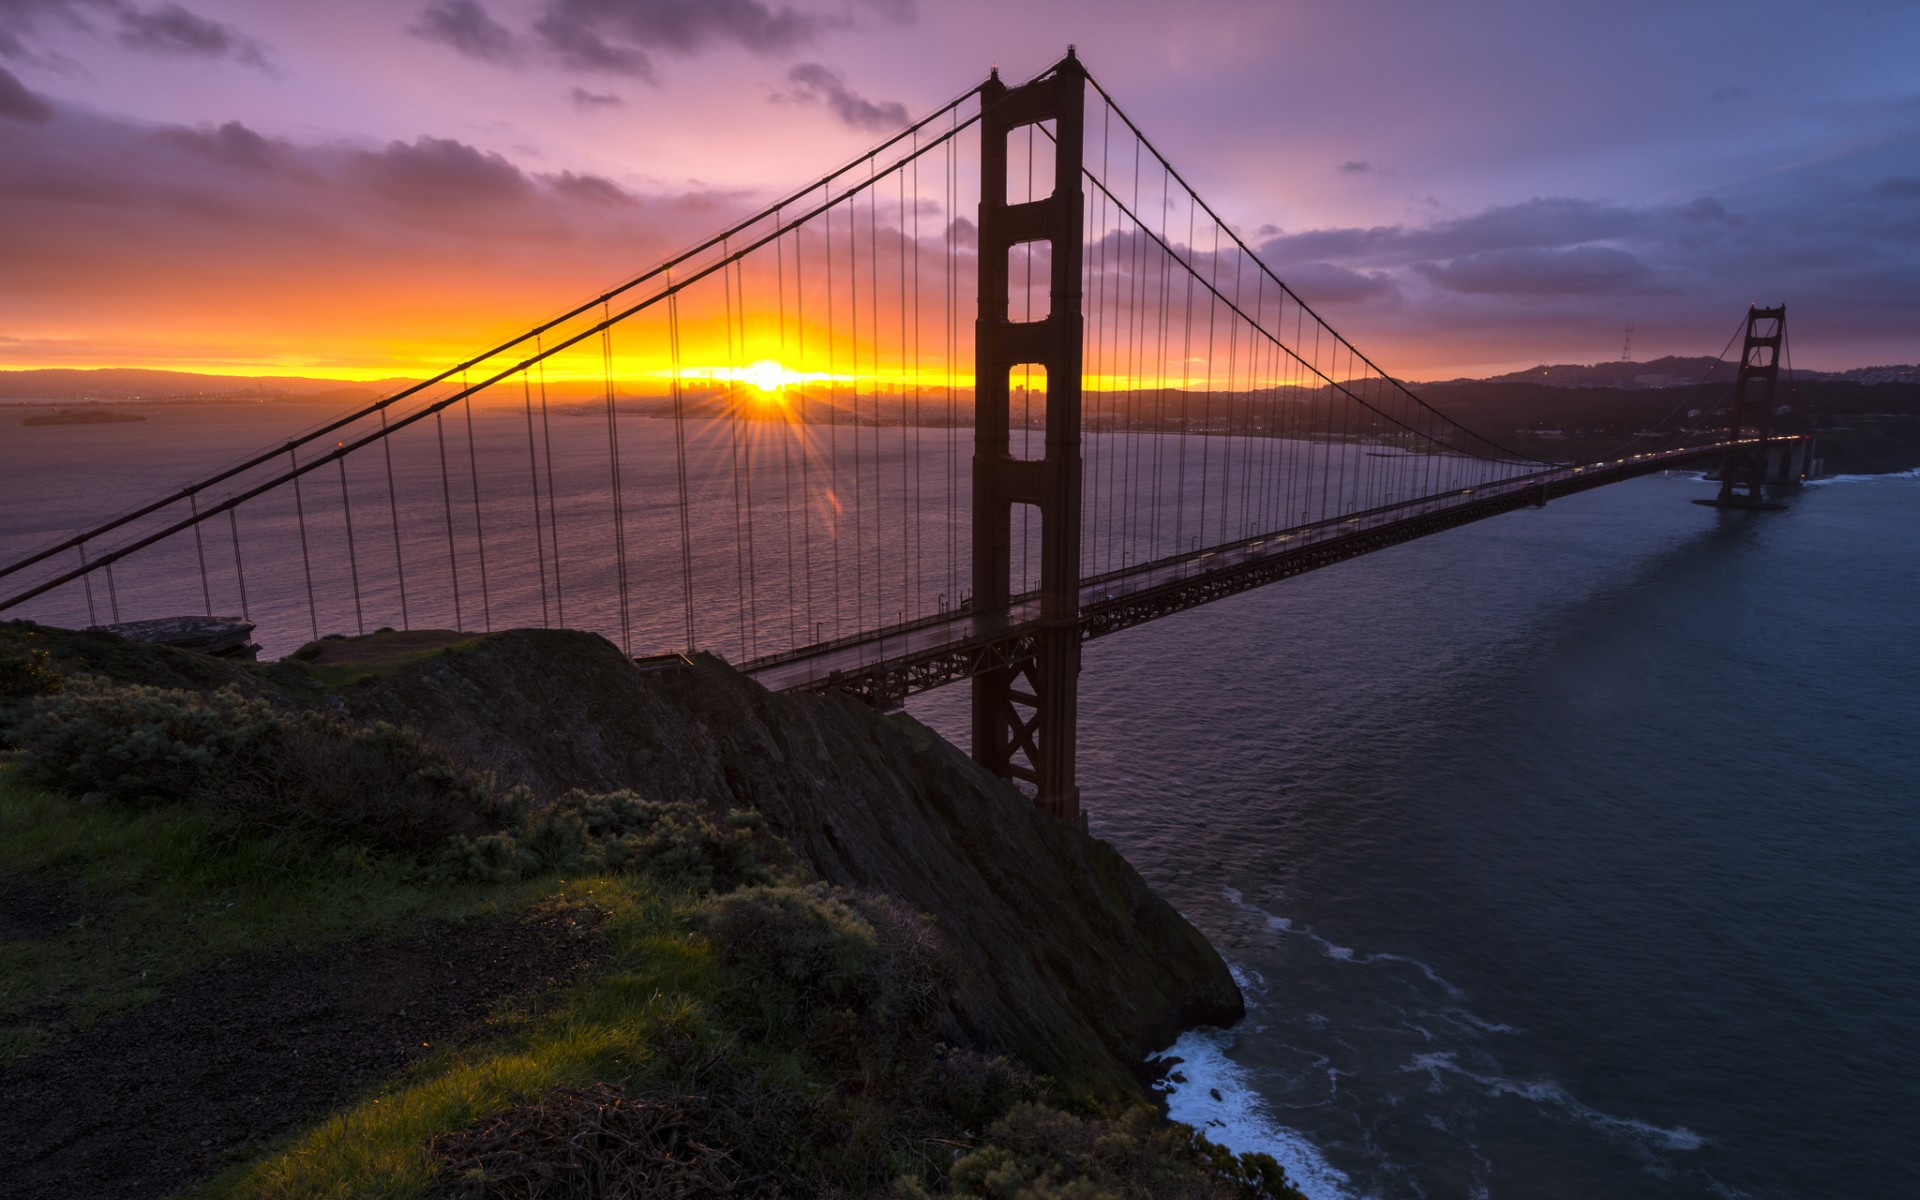 4. Golden Gate Bridge, San Francisco, USA 1